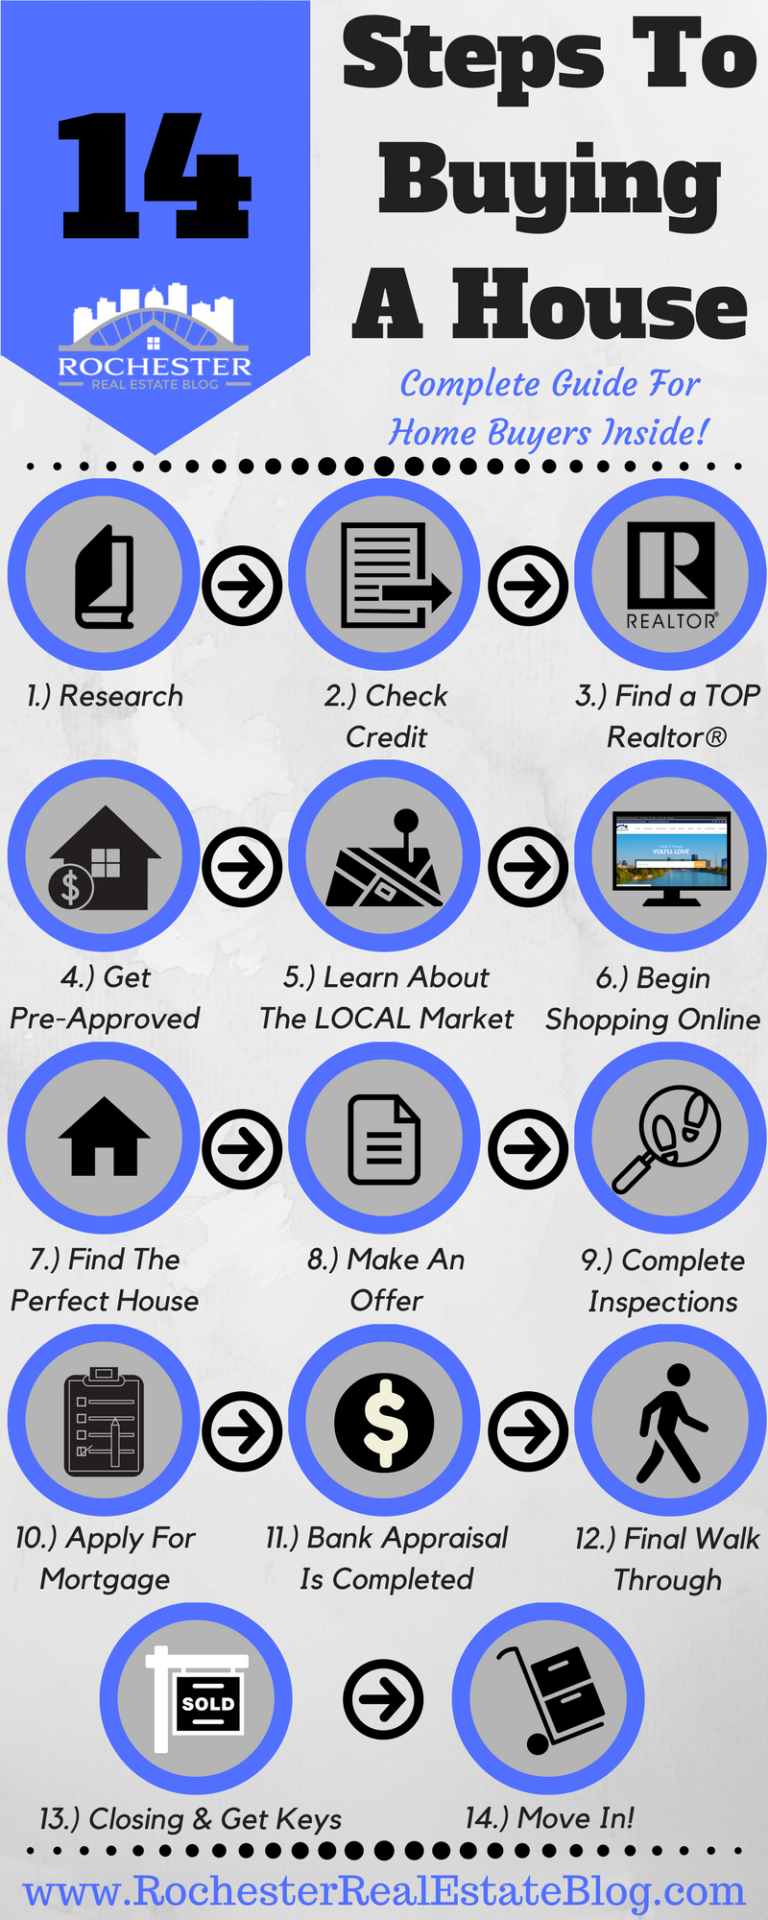 14 Steps To Buying A House A Complete Guide For Home